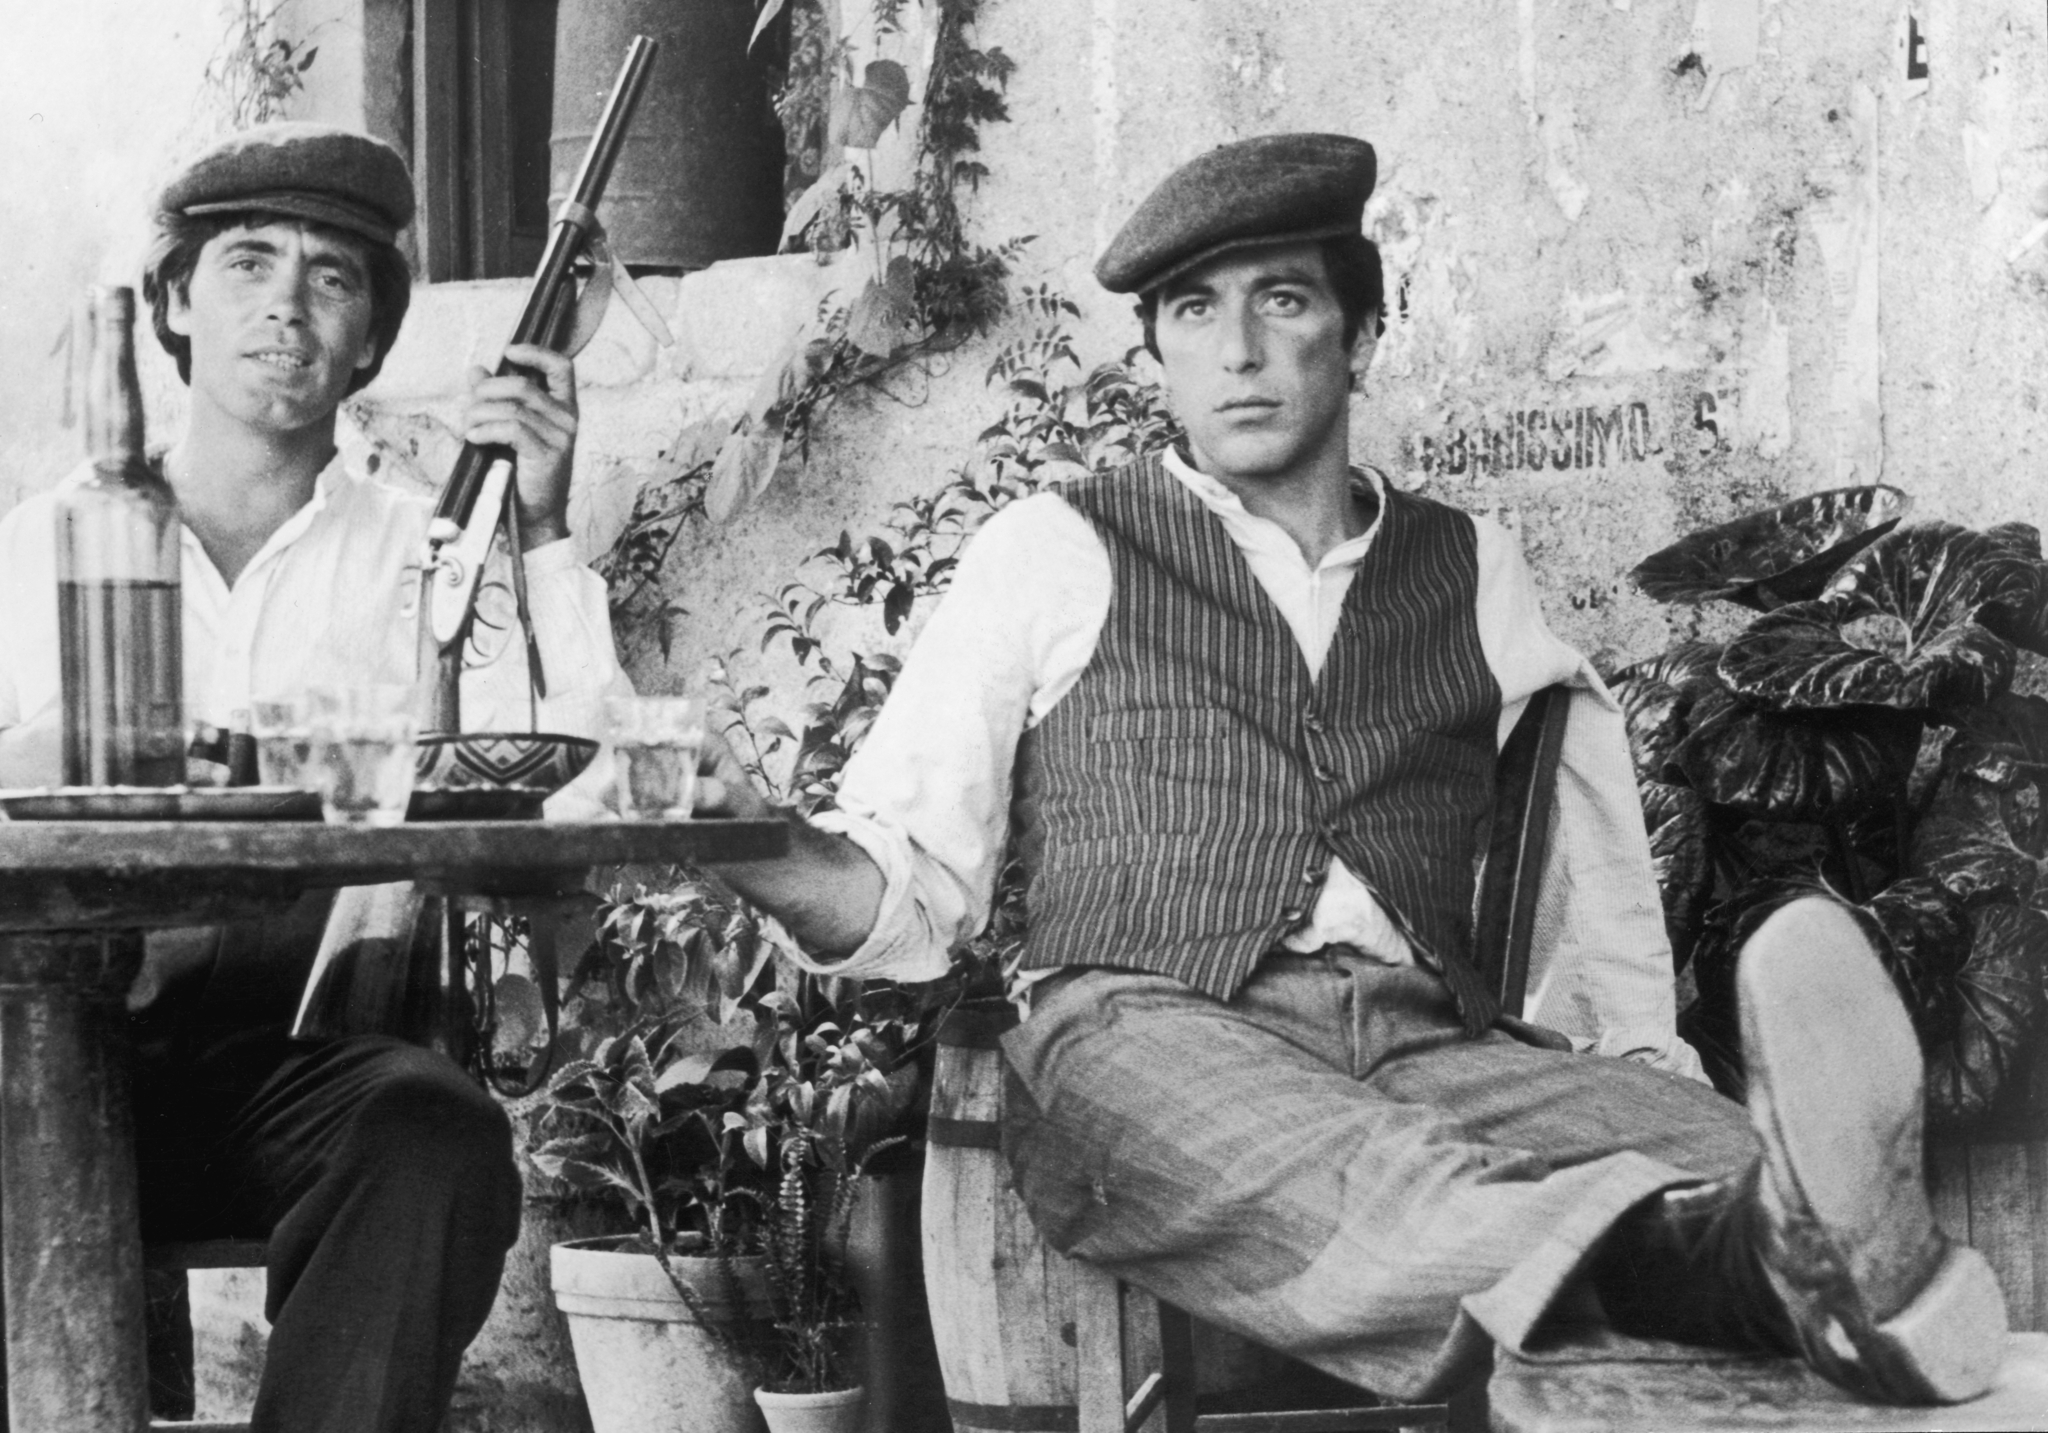 Al Pacino and Franco Citti in The Godfather (1972)